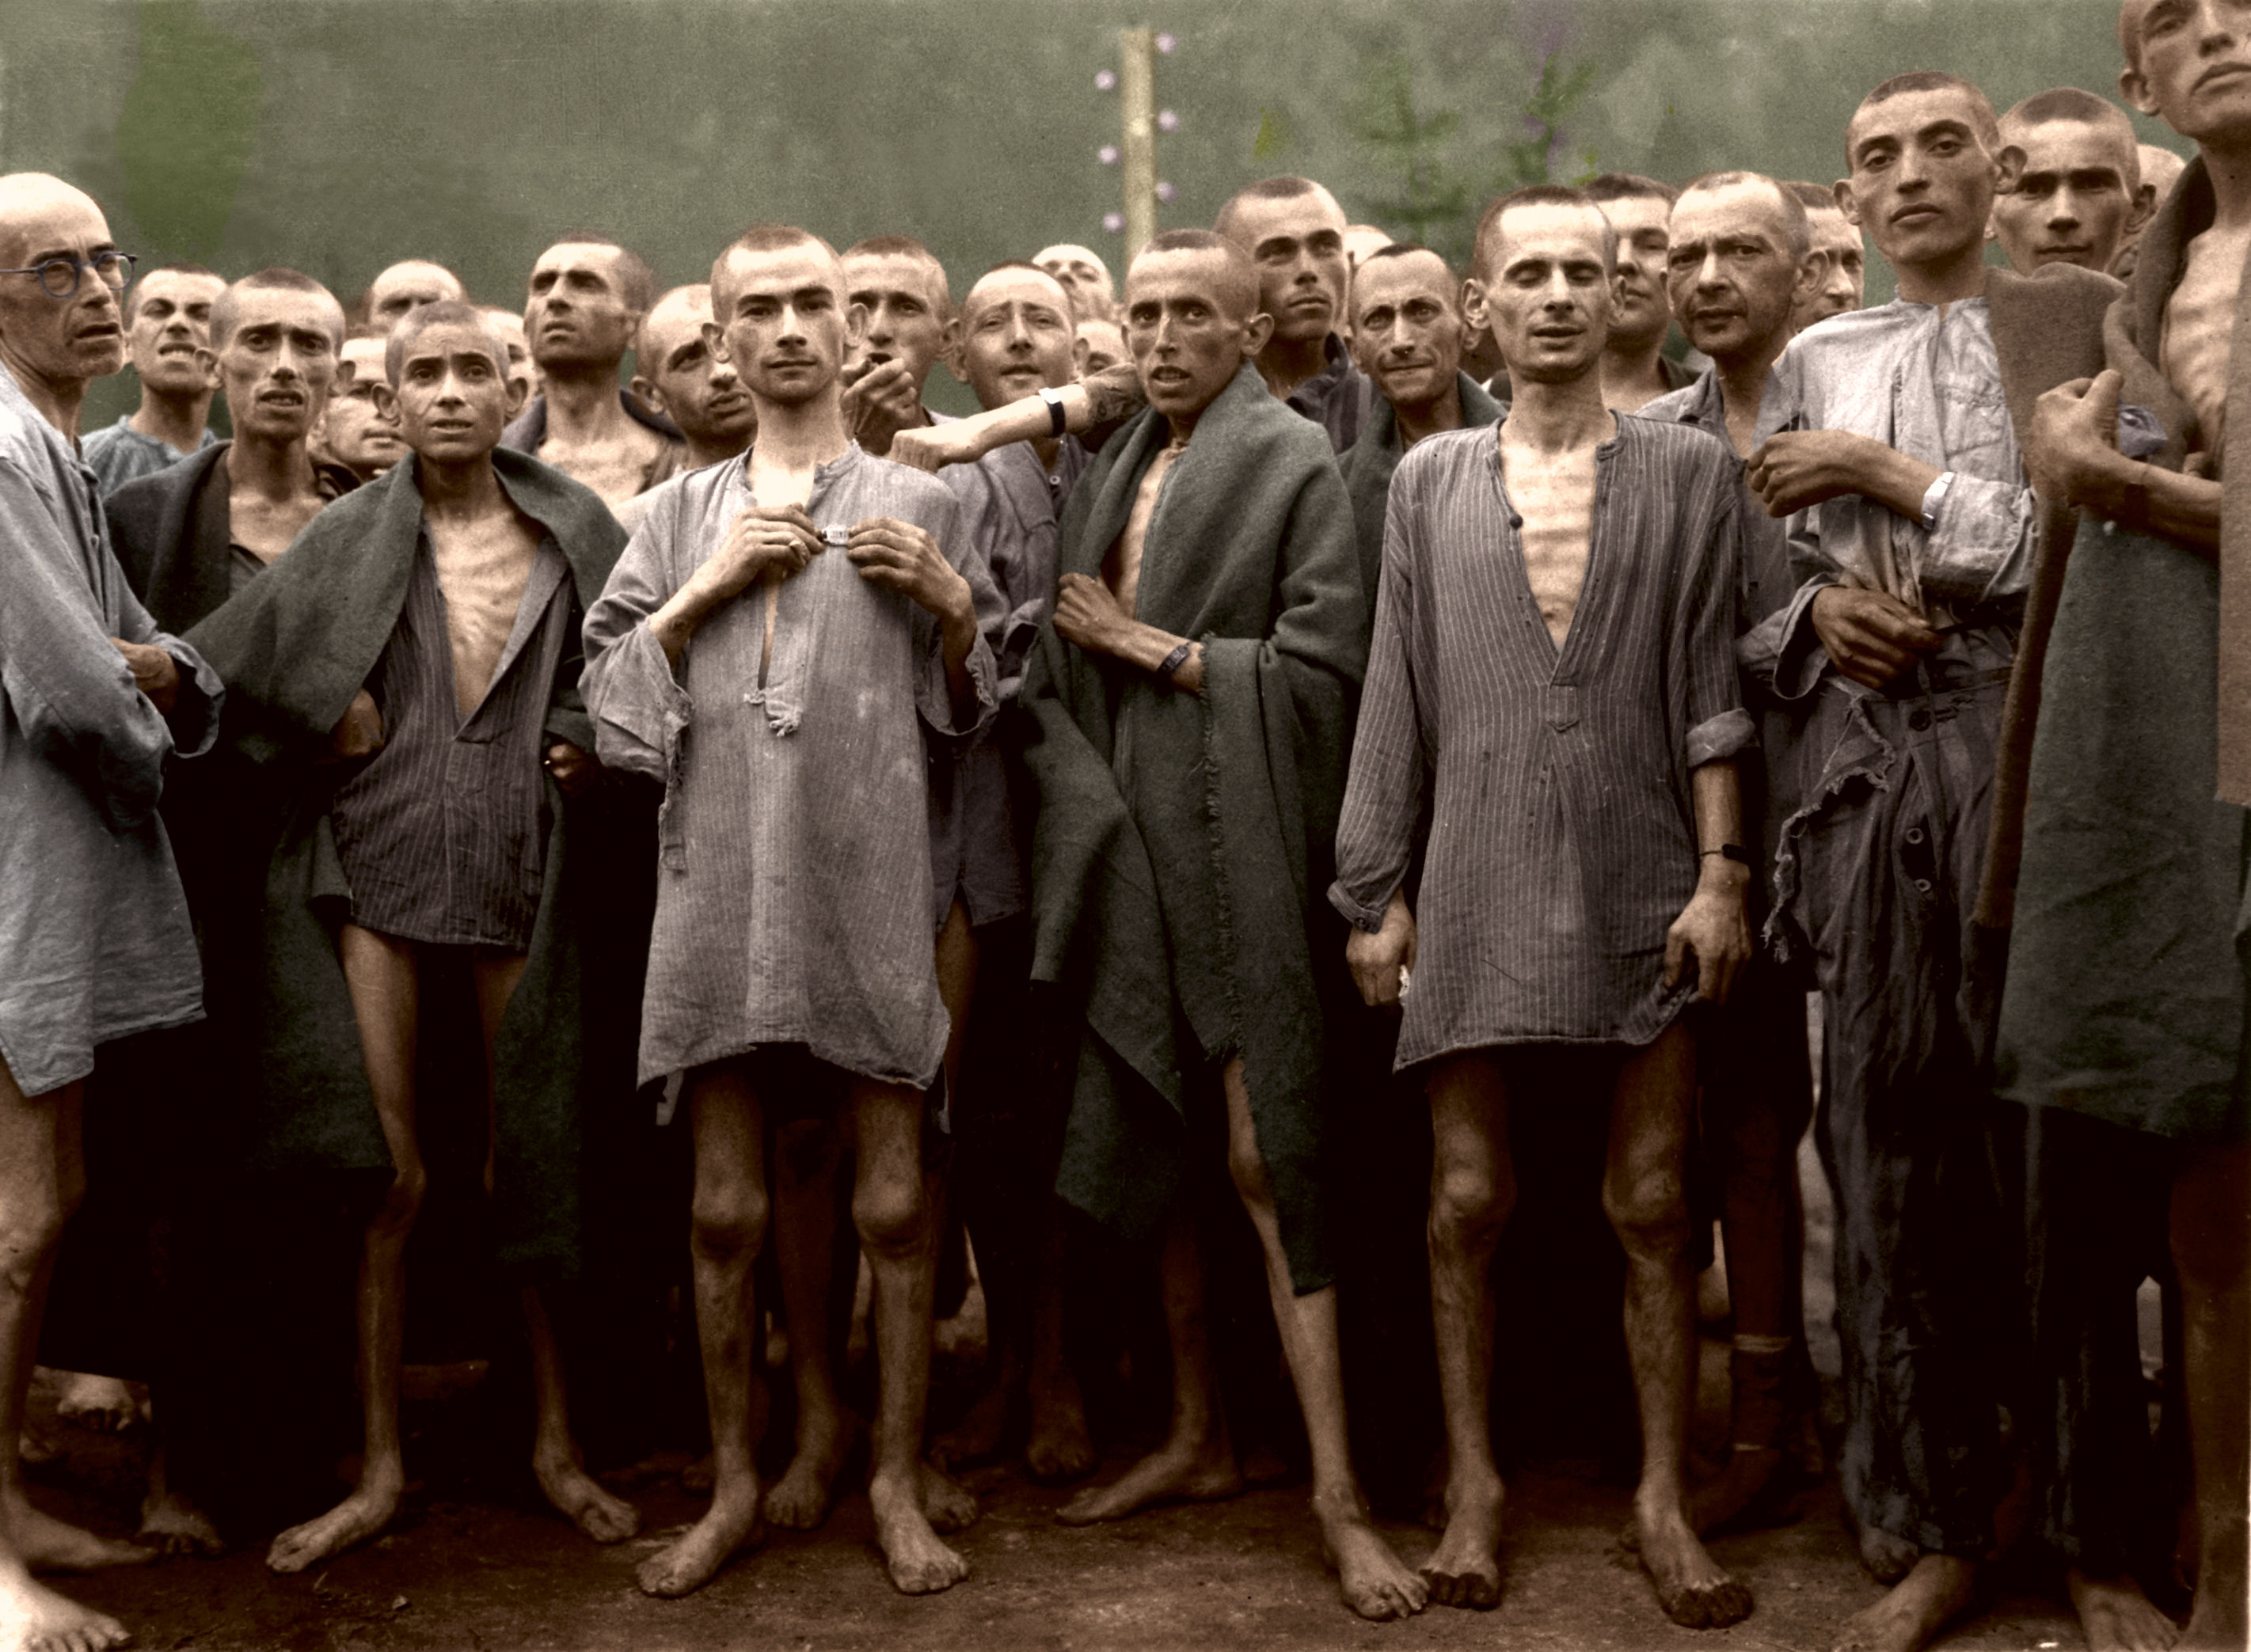 Ebensee_concentration_camp_May 6, 1945